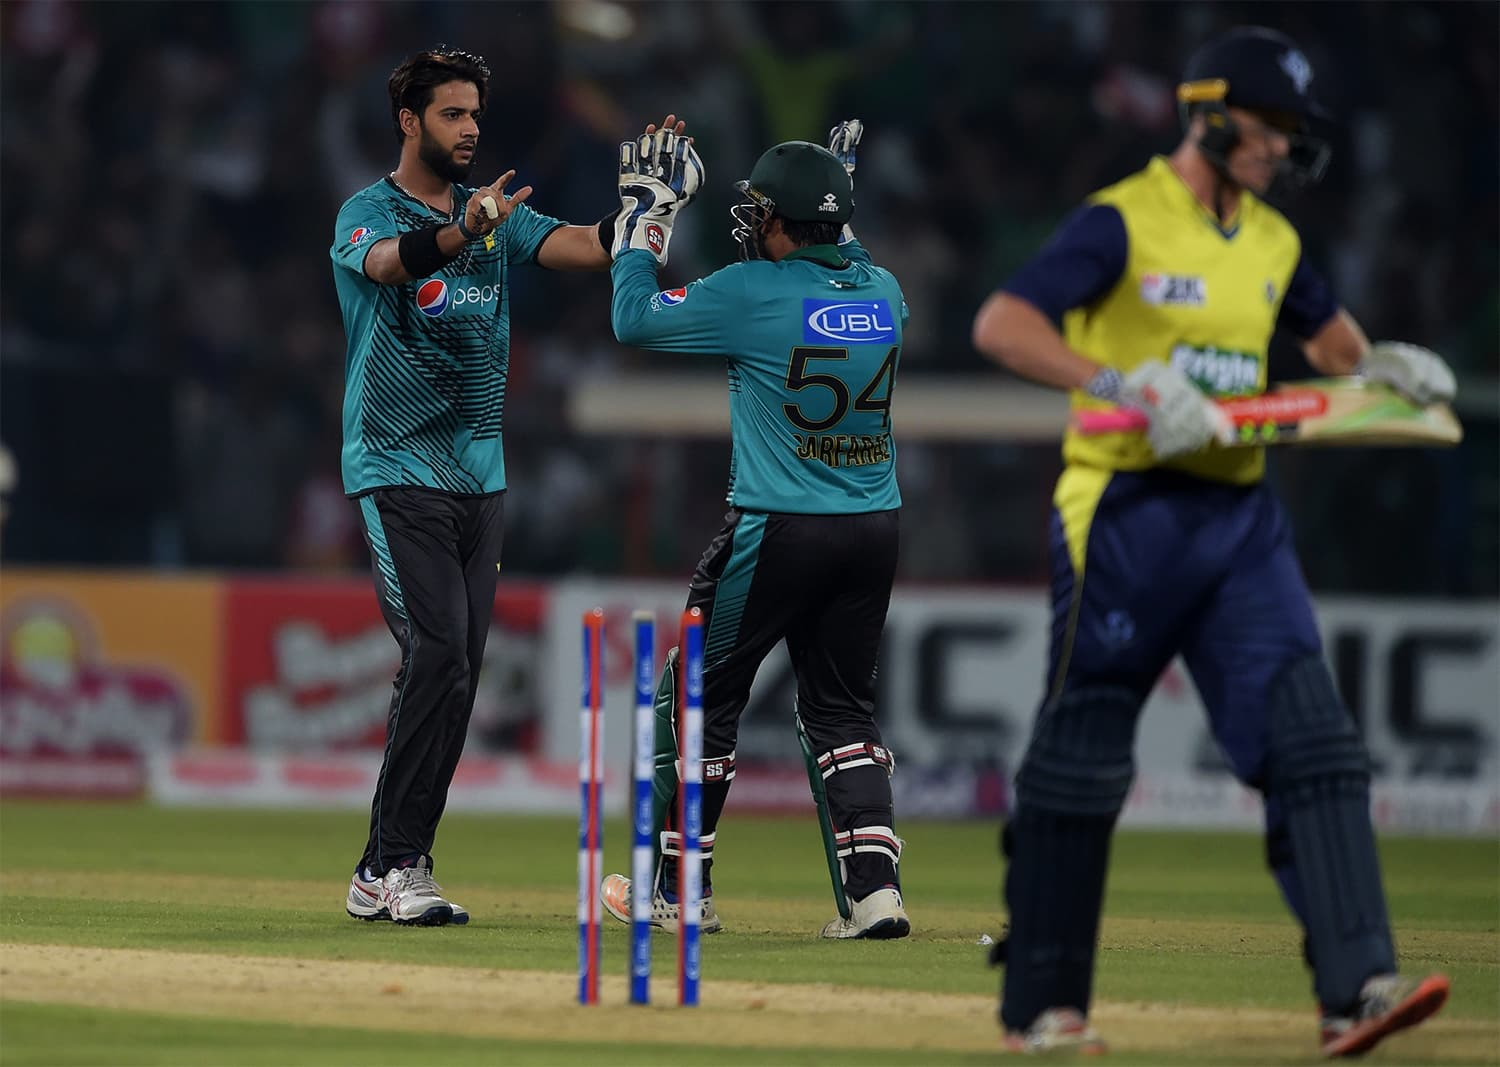 Pakistani spinner Imad Wasim (L) celebrates with captain and wicketkeeper Sarfraz Ahmad (C) after taking the wicket of World XI batsman George Bailey (R) during the third and final Twenty20 International match between the World XI and Pakistan at the Gaddafi Cricket Stadium in Lahore on September 15, 2017.  / AFP PHOTO / AAMIR QURESHI